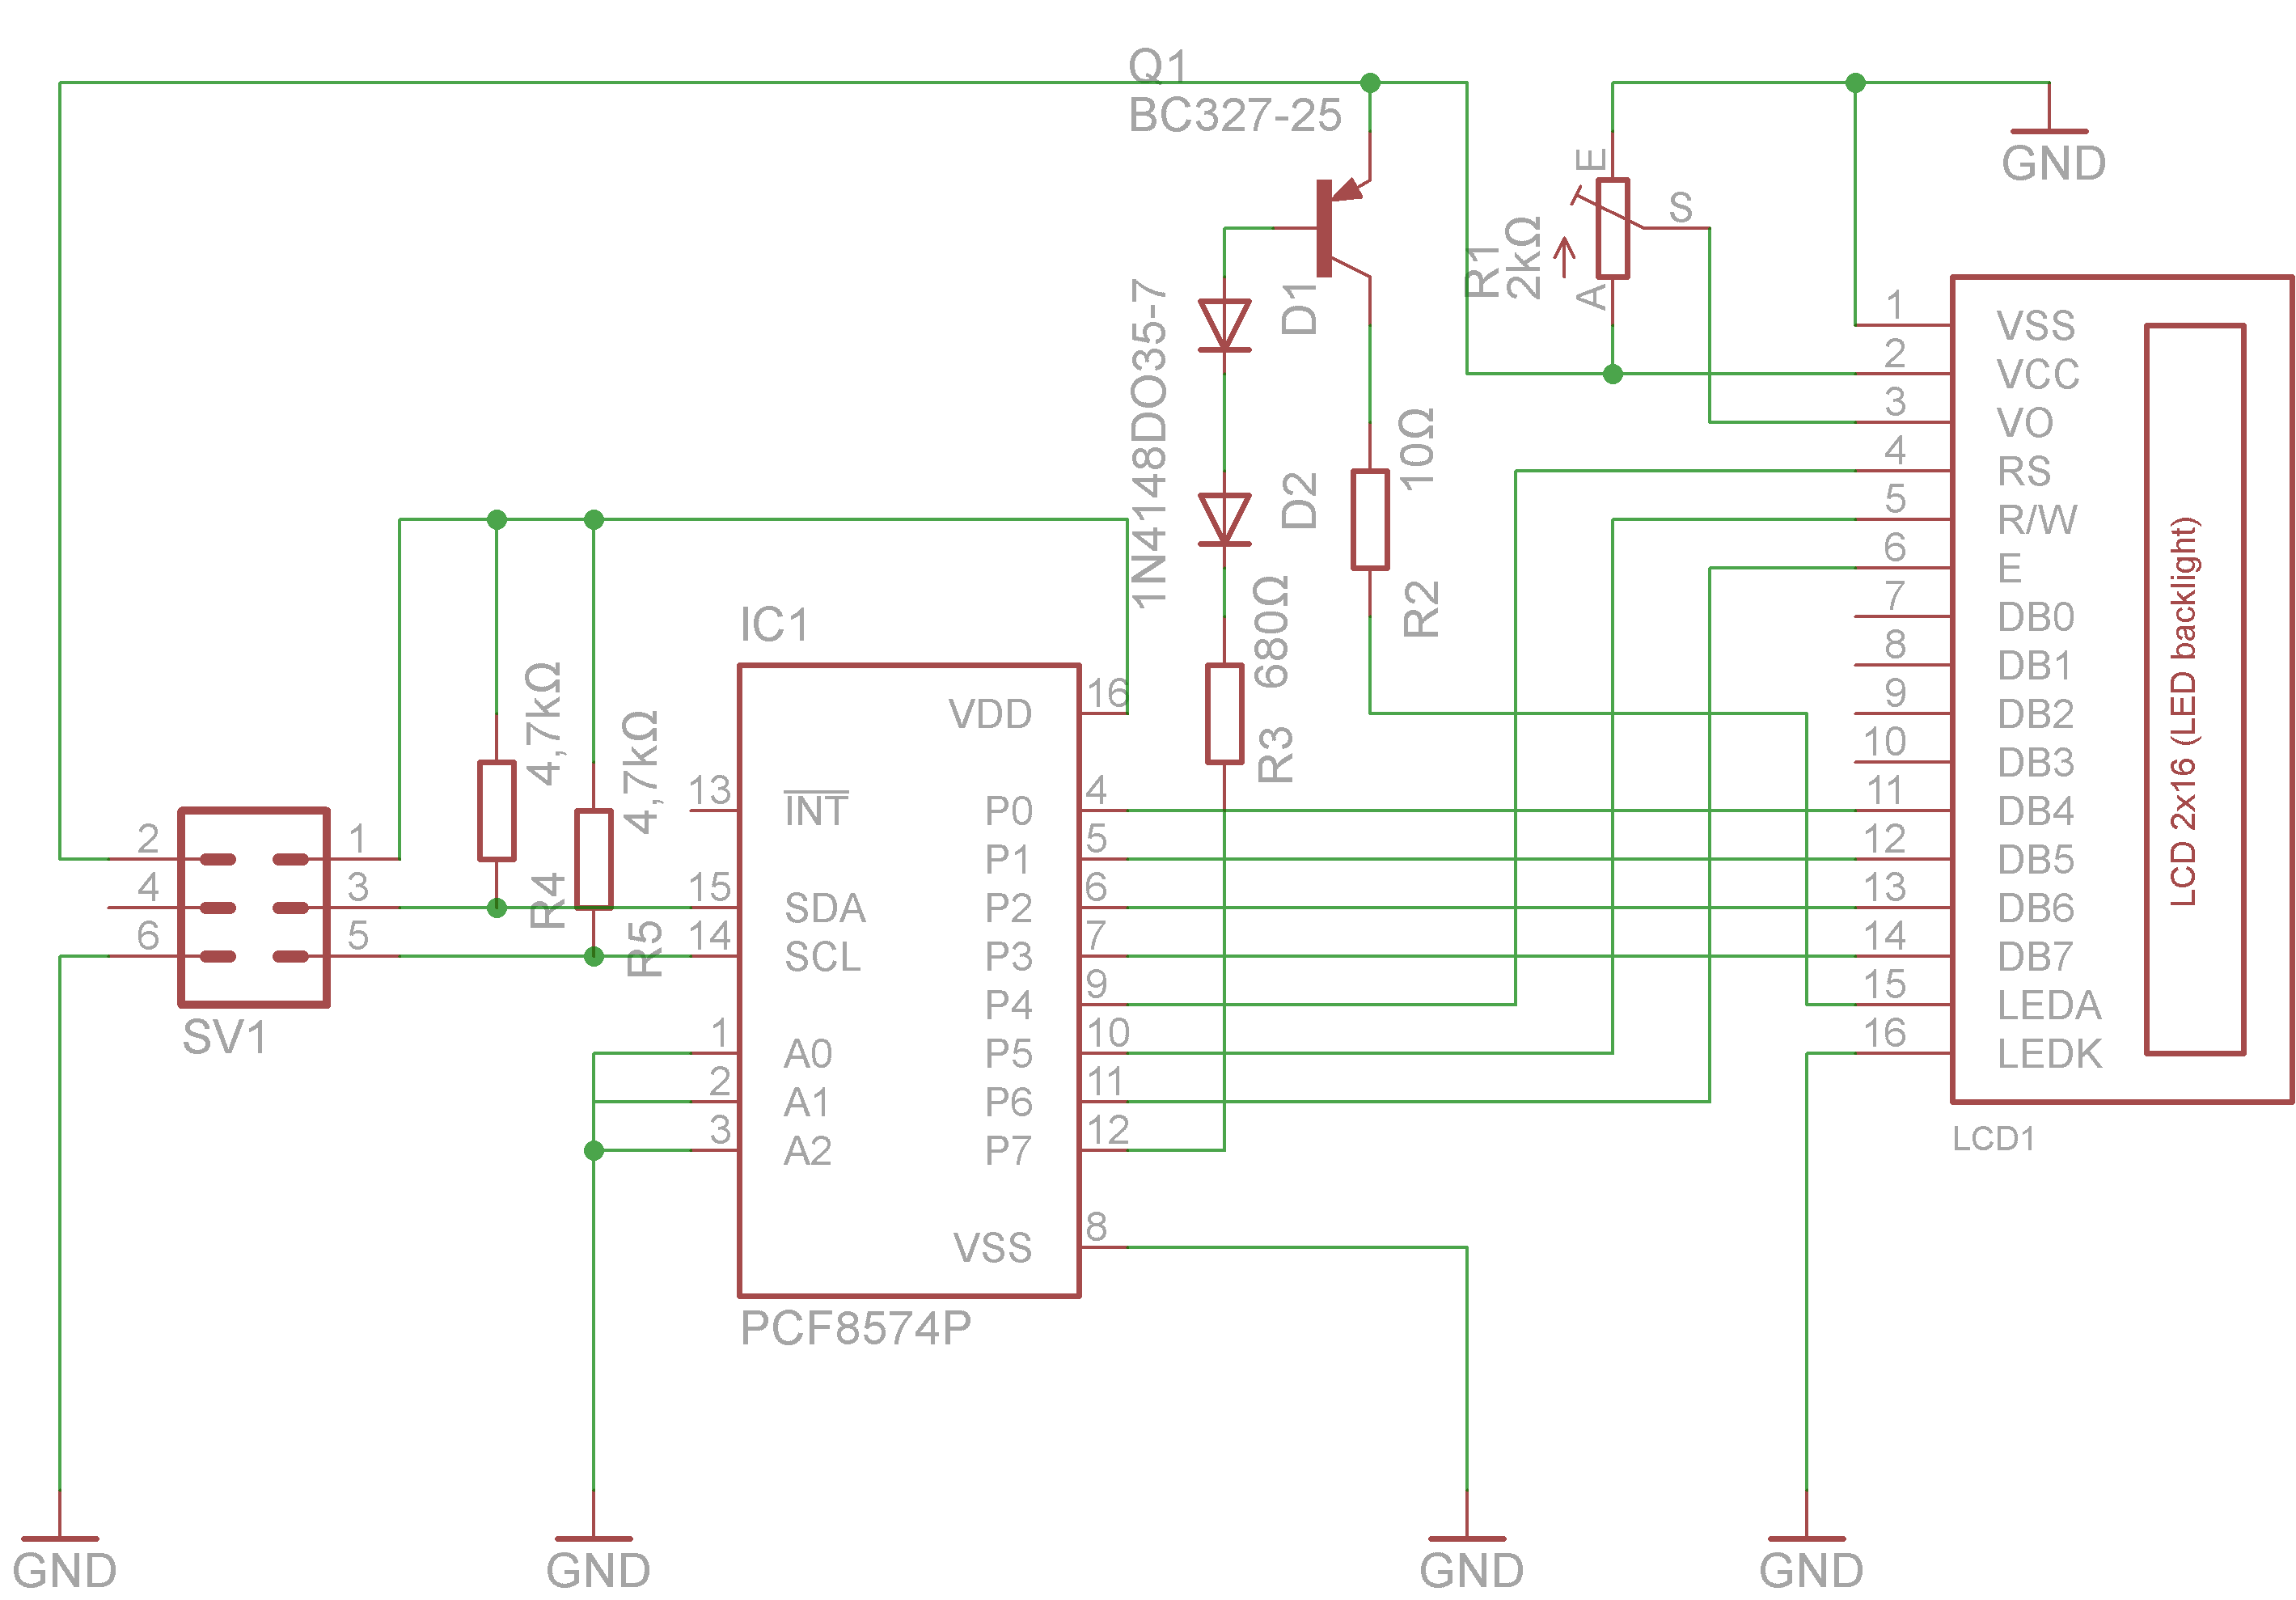 Connecting A Hd44780 Display To Raspberry Pimichls Tech Blog Pi Model B Circuit Diagram Over I2c Bus